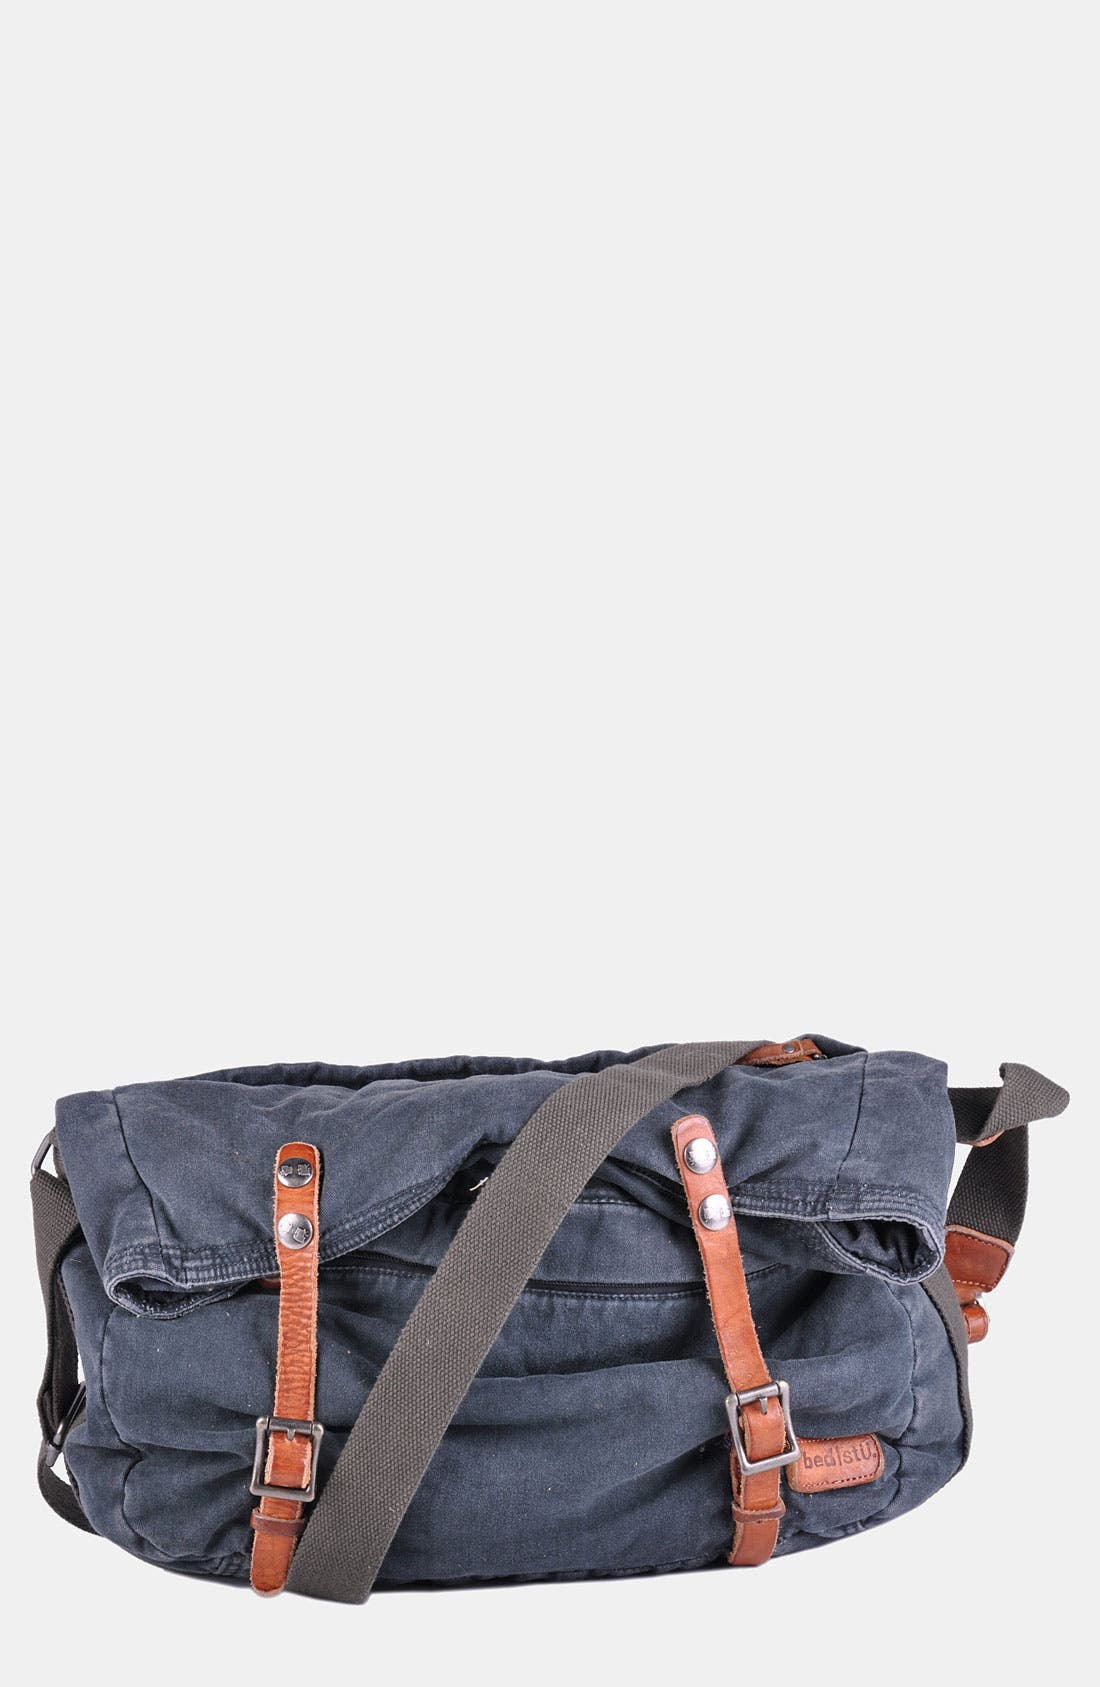 Main Image - Bed Stu 'Grand Canyon' Bag